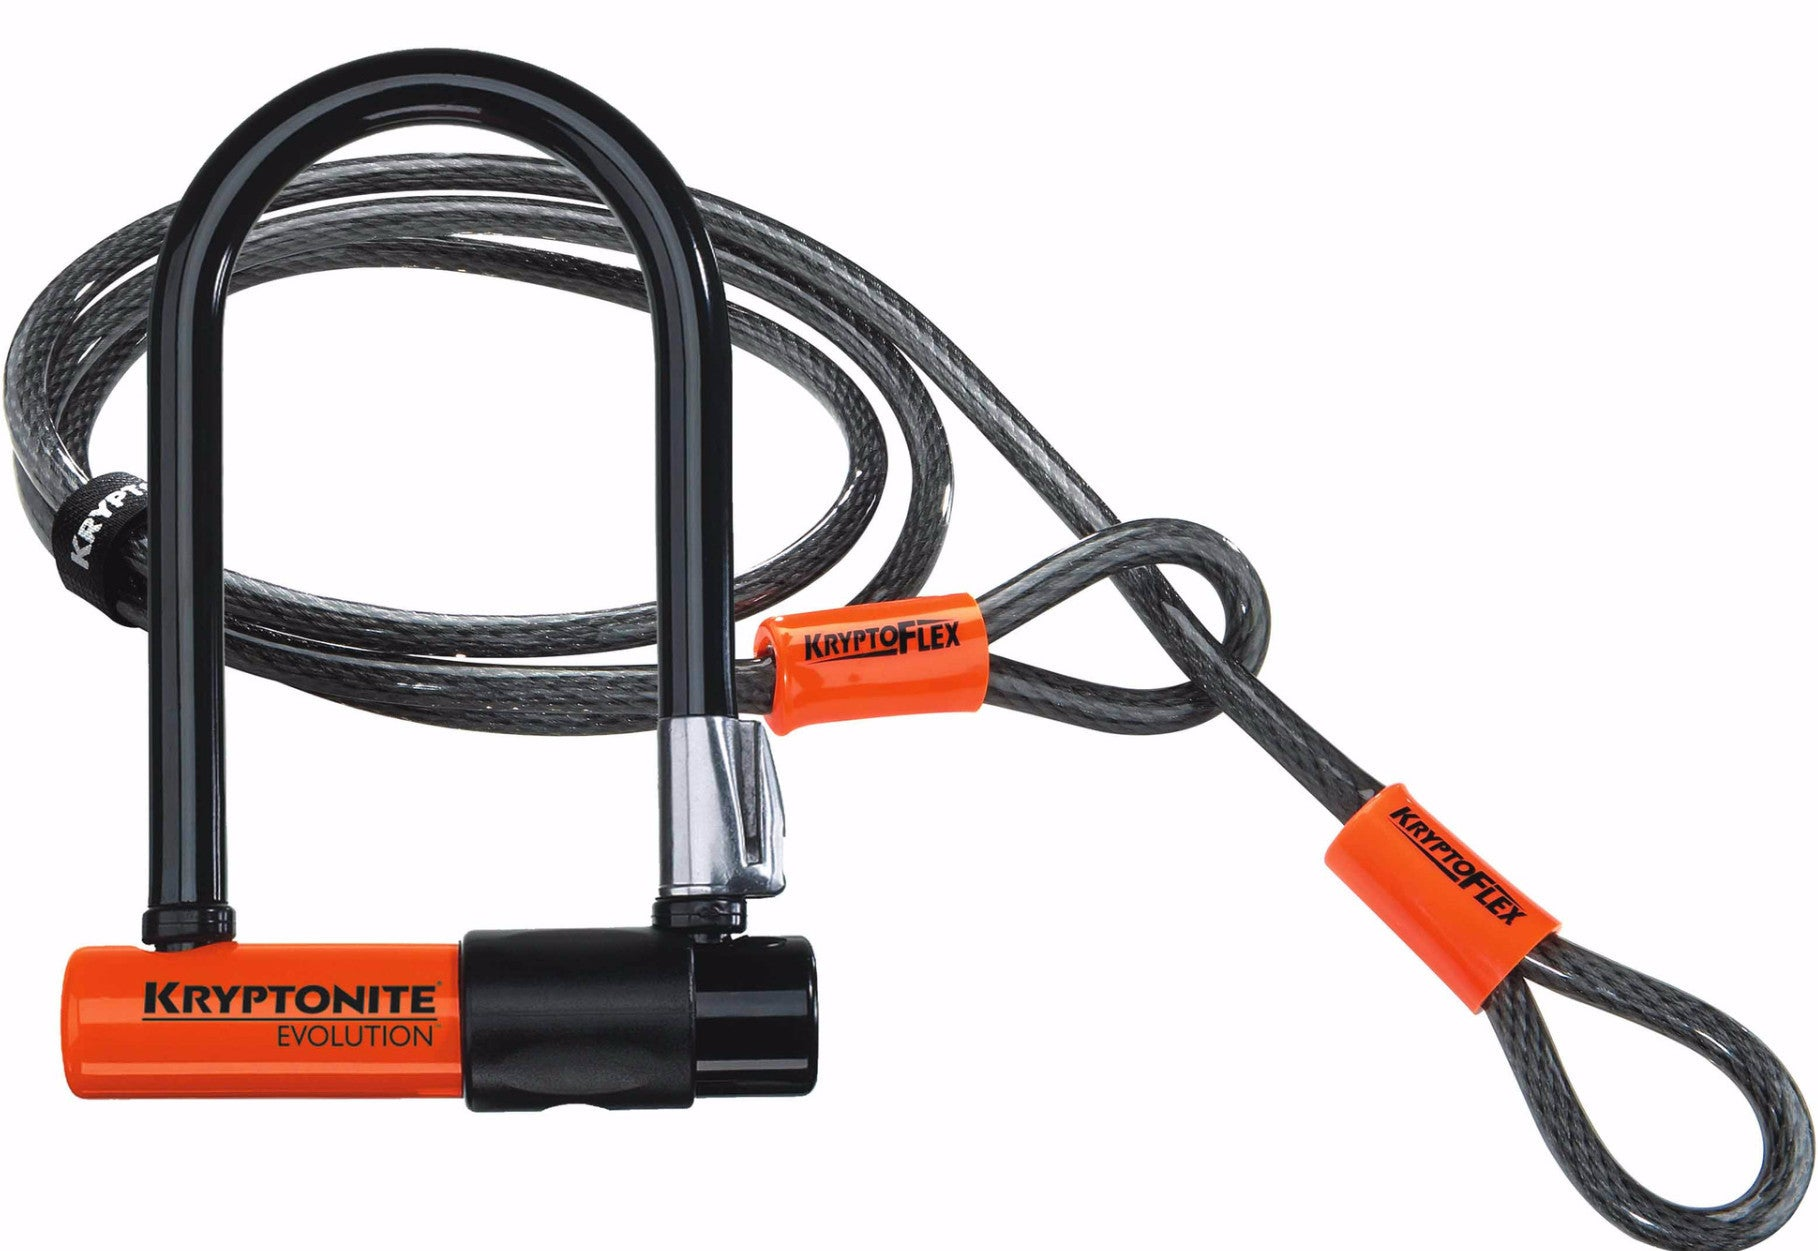 Kryptonite Evolution Mini 7 U Lock & Cable Bicycle Lock - Racer Sportif